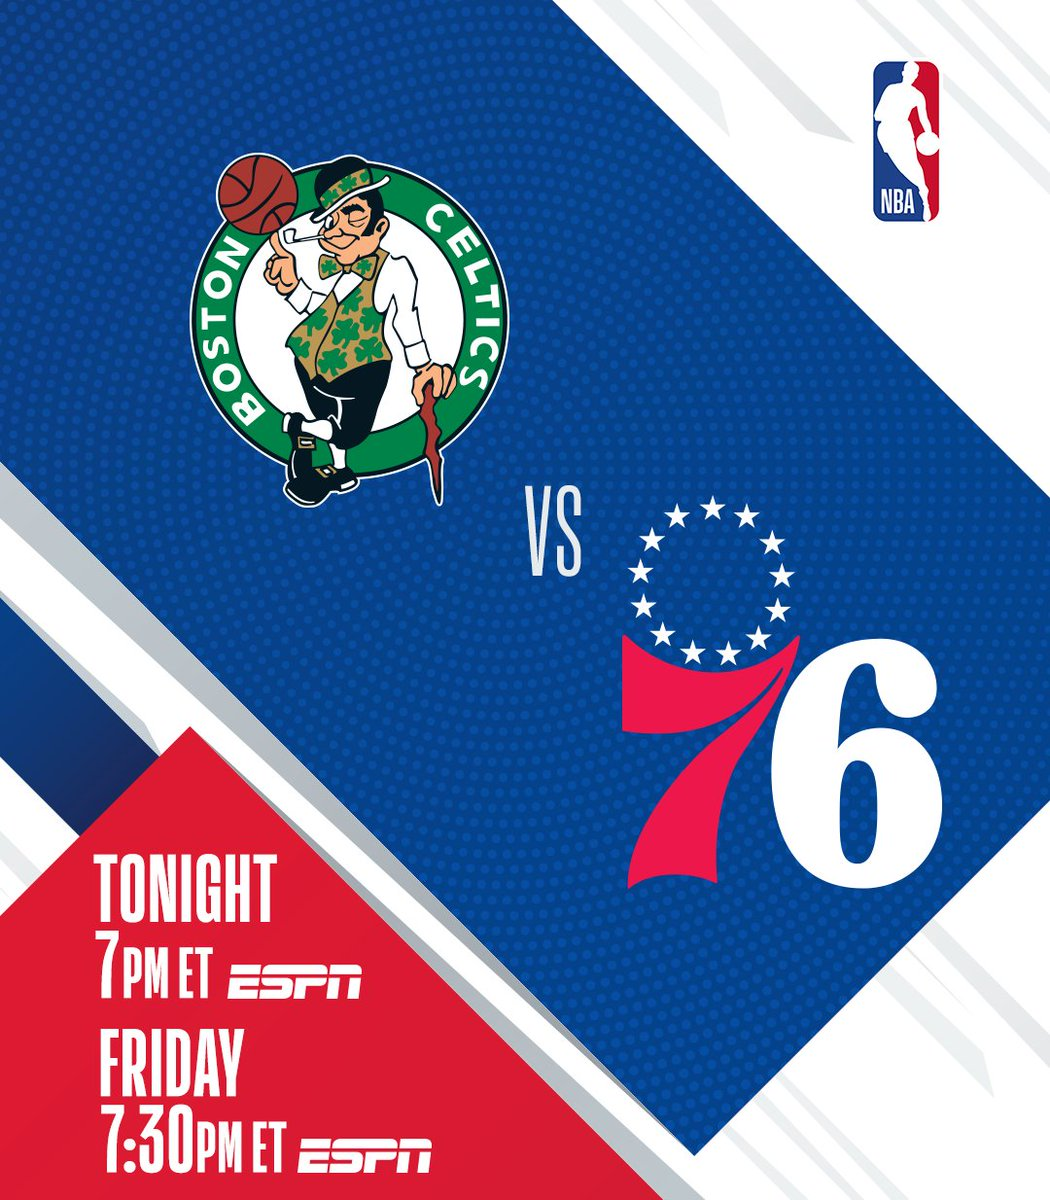 TONIGHT on ESPN:  ▪️ 1st of 2 back-to-back BOS/PHI matchups ▪️ Oladipo (32 PTS in HOU debut) vs. CP, Book, PHX  @celtics/@sixers, 7:00 PM ET @Suns/@HoustonRockets, 9:30 PM ET https://t.co/UOVwbcDNxQ